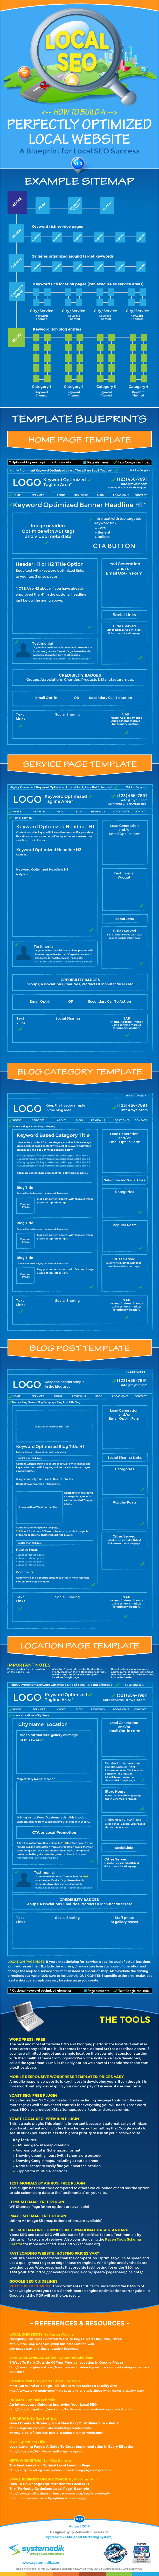 Small-Business-Local-SEO-Template-Blueprint-Infographic